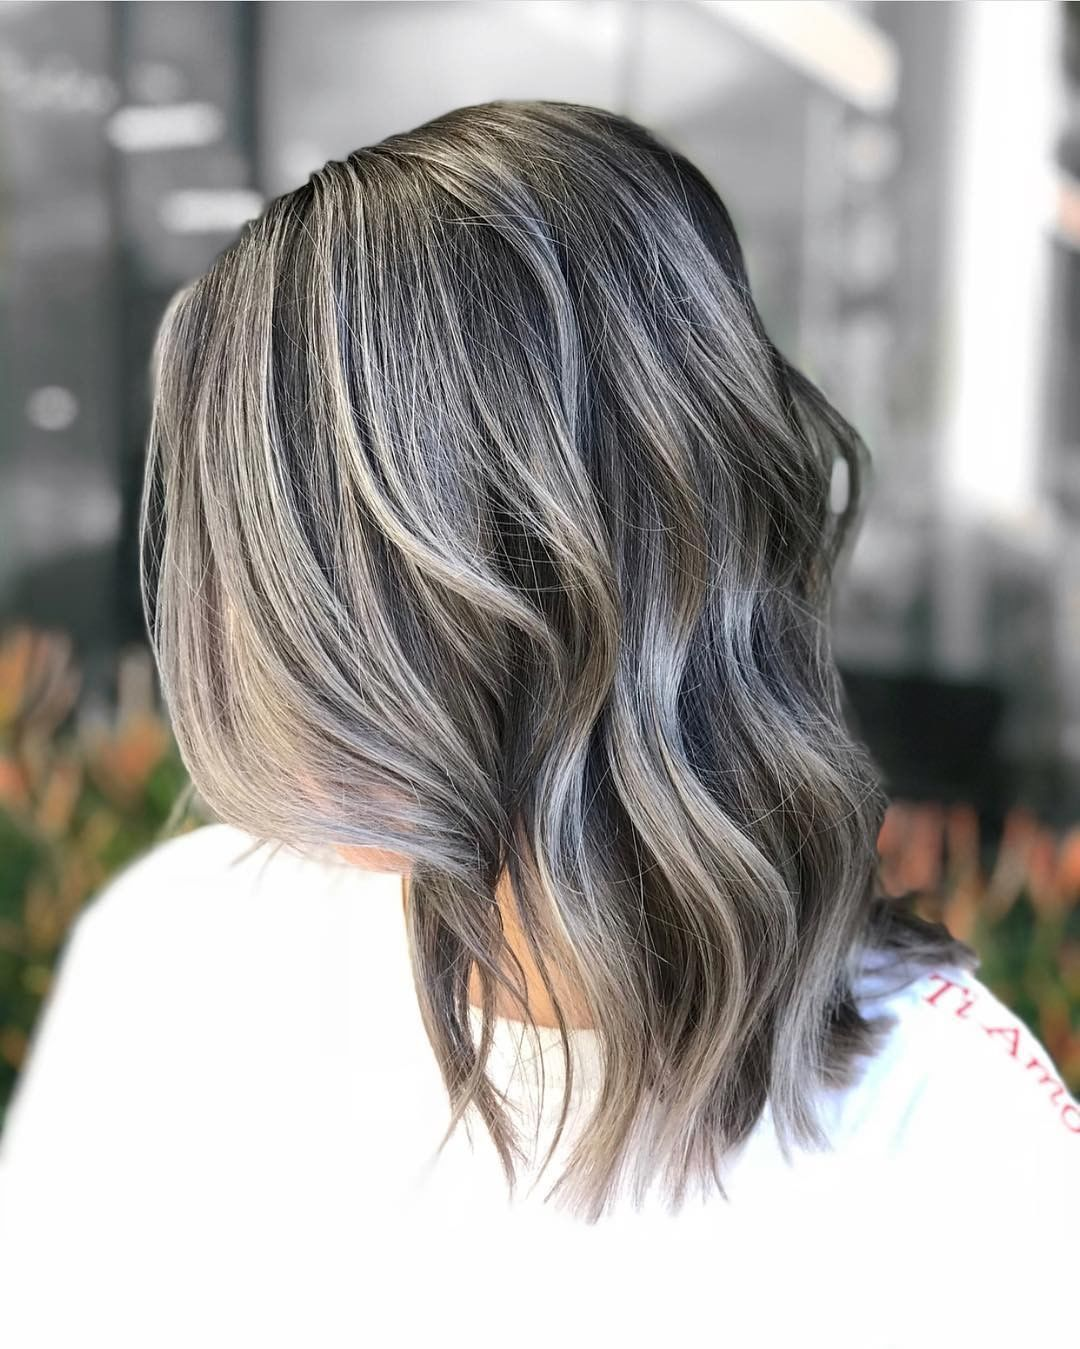 Grey Hair Isn T Just For Old Ladies Any More This Gorgeous Silvery Hair Color Is Everything And Grey Hair Styles For Women Natural Gray Hair Long Thin Hair